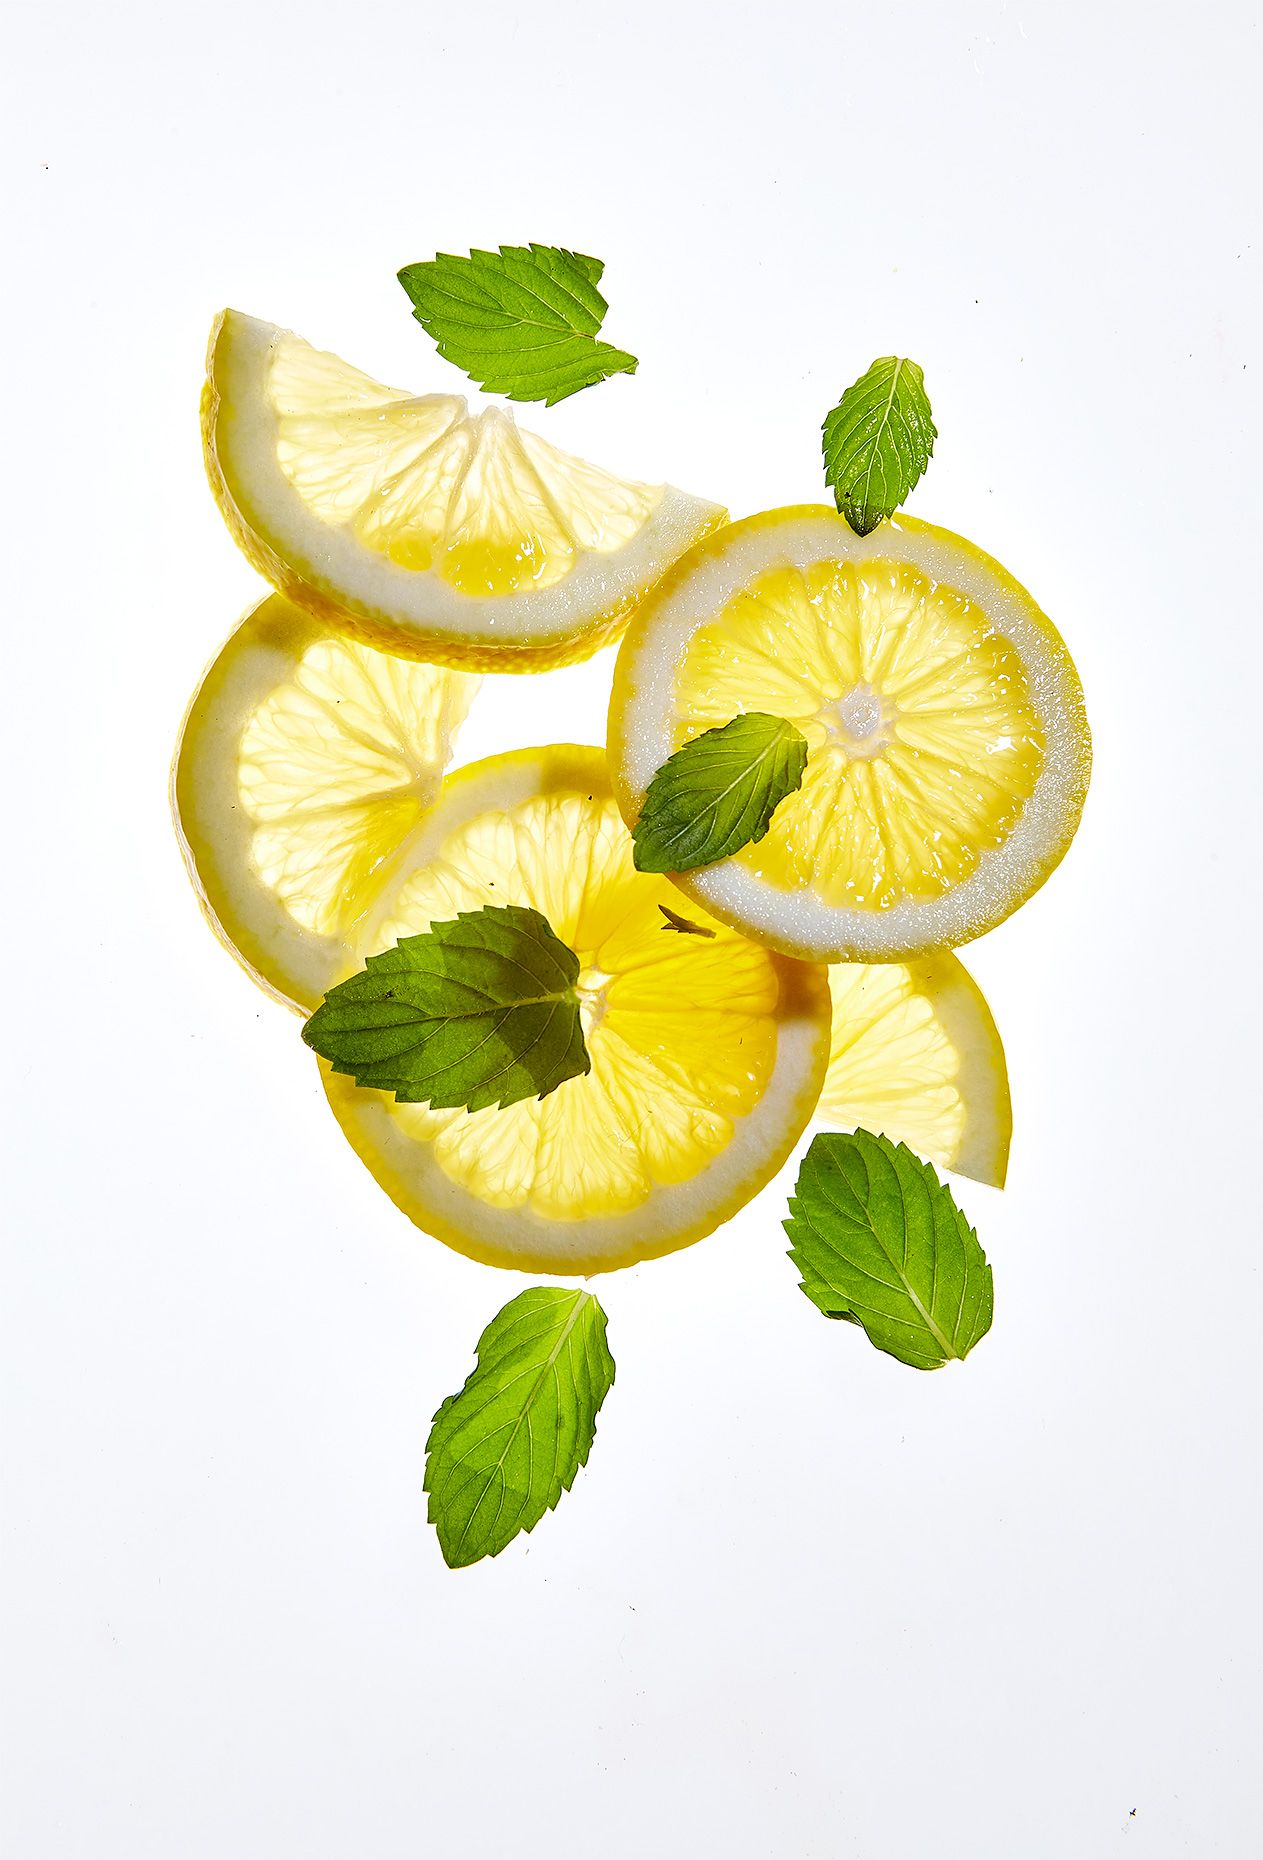 Lemon_Mint_Graphic_8_2017_3304_web